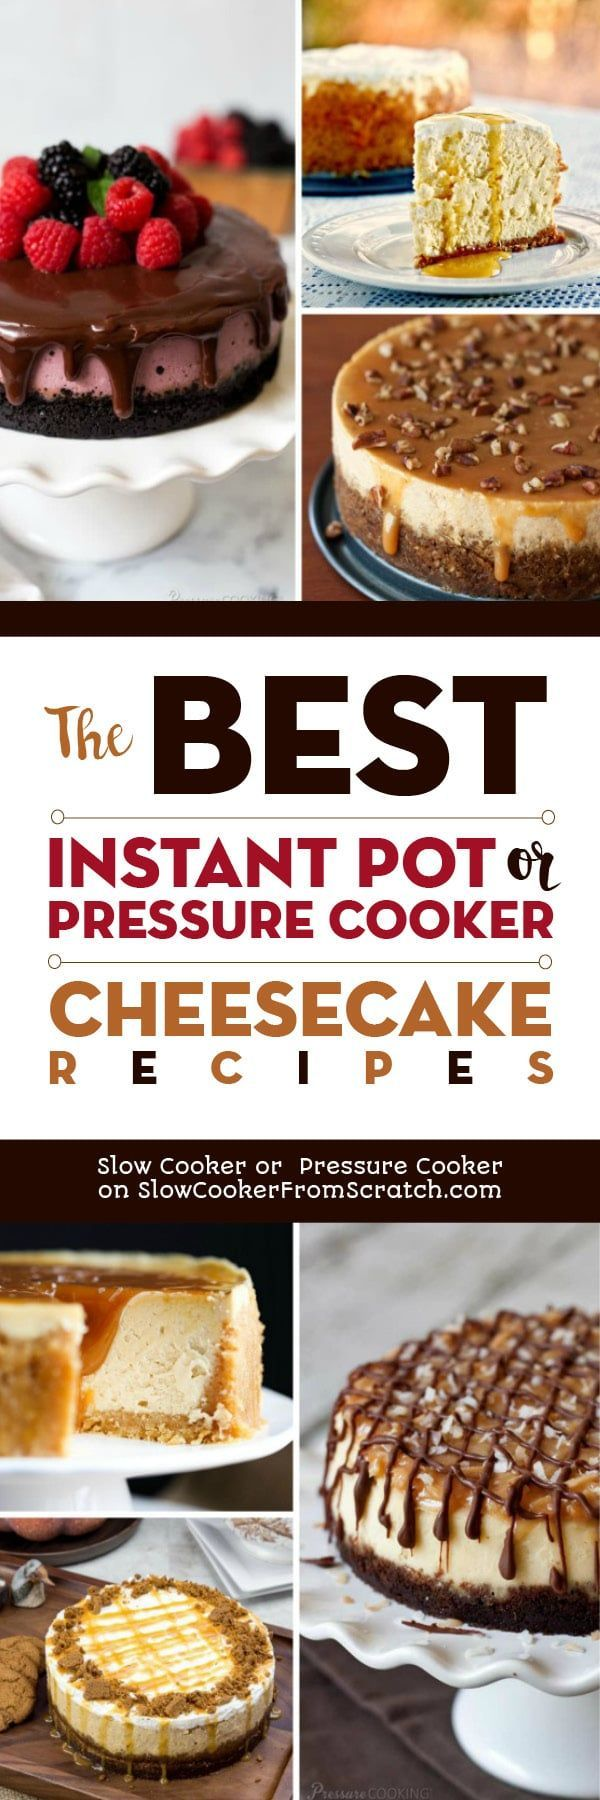 People love to make cheesecake in the Instant Pot or electric pressure cooker, and this collection of The BEST Instant Pot or Pressure Cooker Cheesecake Recipes has cheesecakes of every kind, even a few low-carb cheesecakes! Enjoy! [featured on Slow Cooker or Pressure Cooker at SlowCookerFromScratch.com] #InstantPot #PressureCooker #InstantPotCheesecake #PressureCookerCheesecake